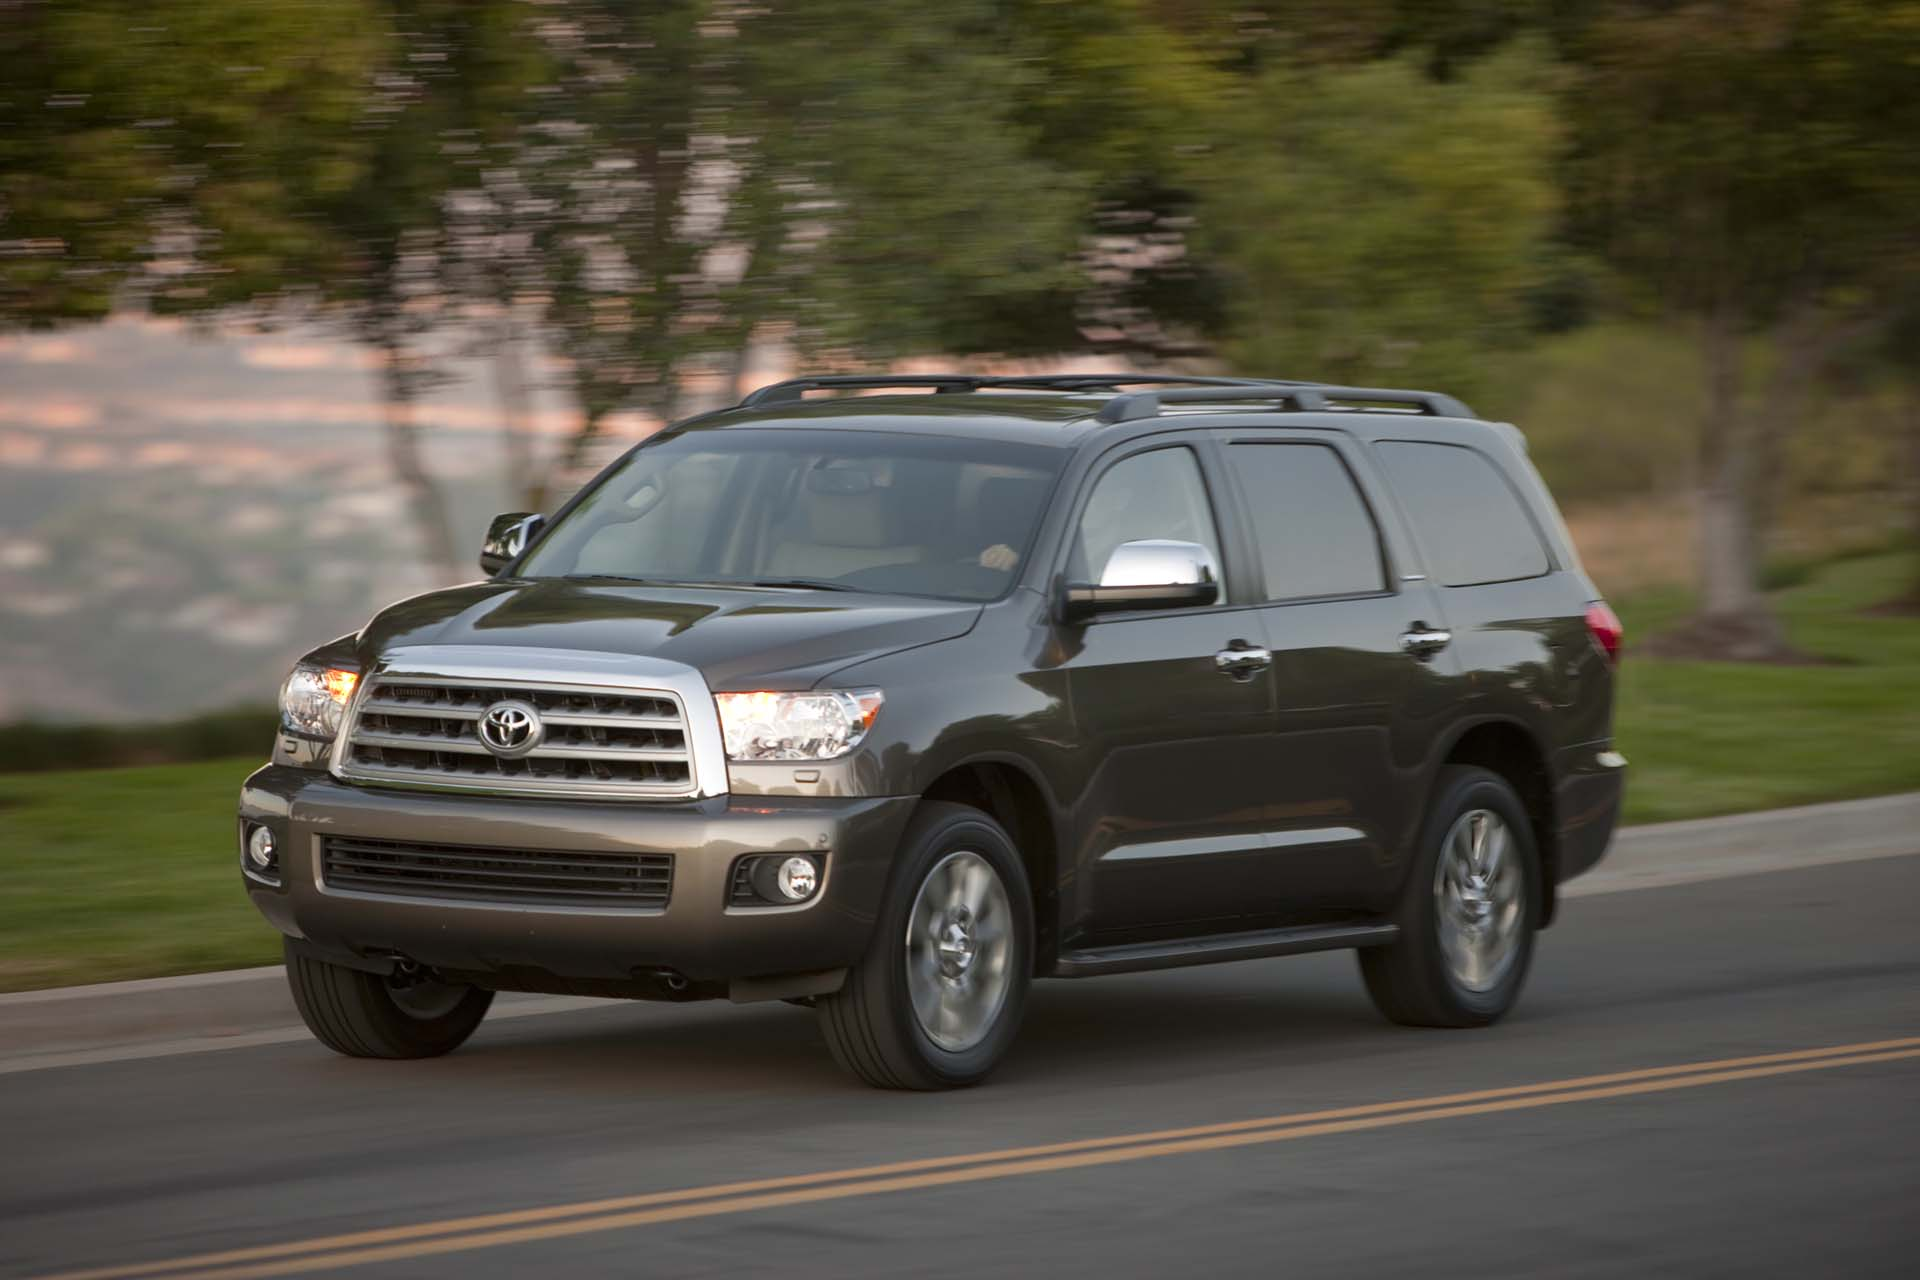 new and used toyota sequoia prices photos reviews. Black Bedroom Furniture Sets. Home Design Ideas